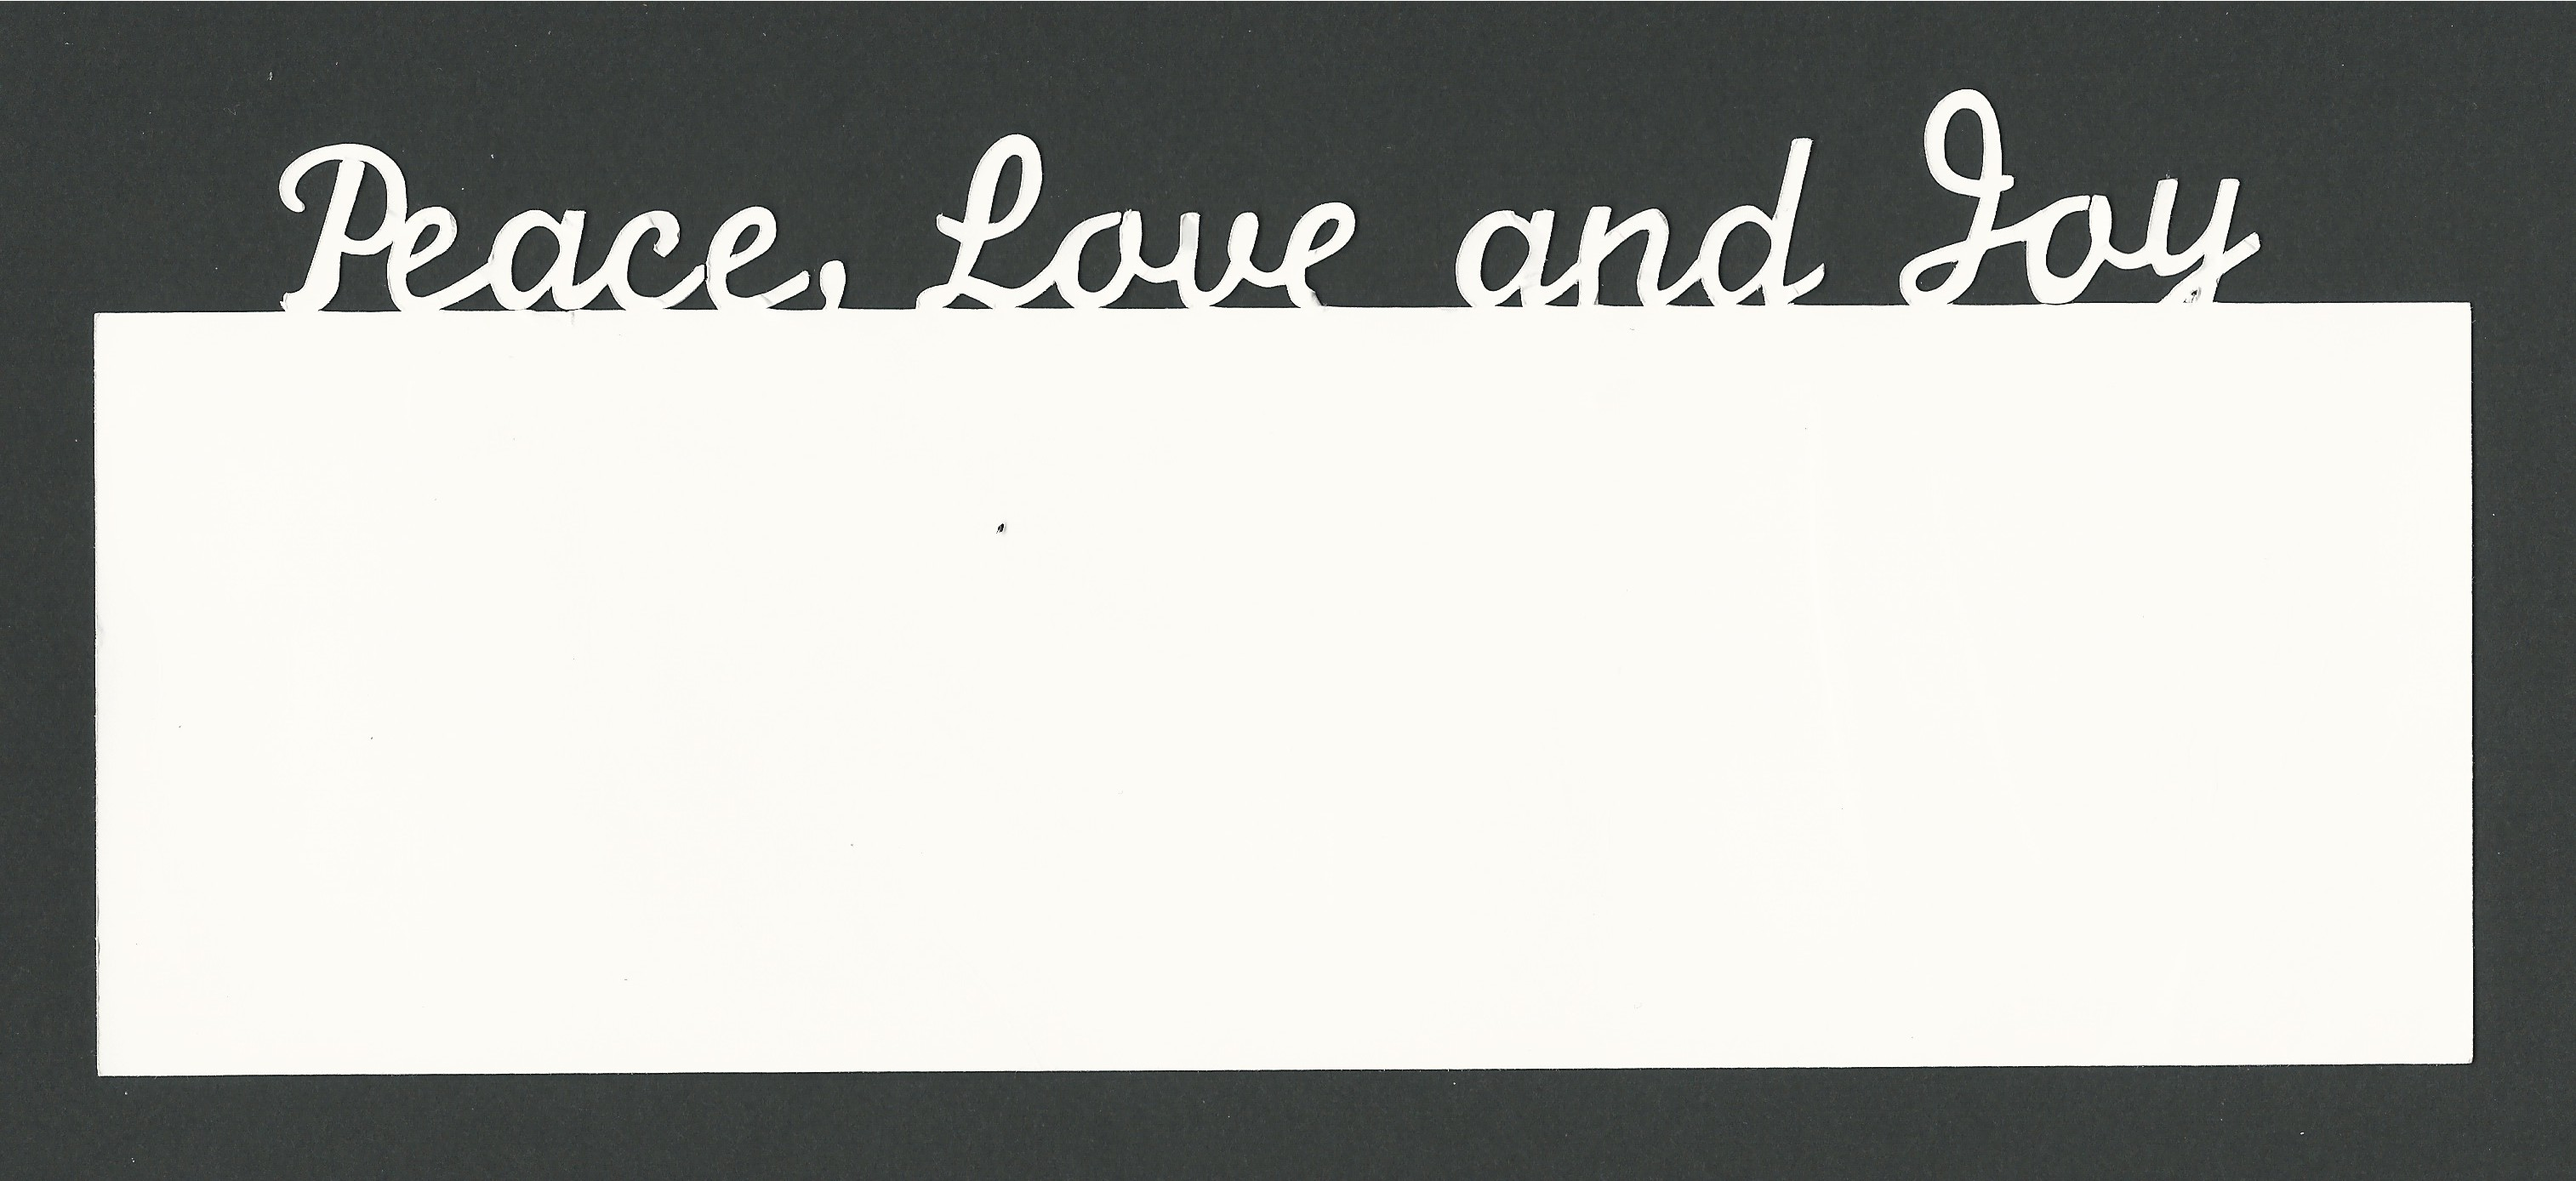 Silhouette Cameo Project No. 1 - Peace, Love and Joy Notecard Sized for standard legal size envelope. Whisper White card stock layered on Basic Black card stock.